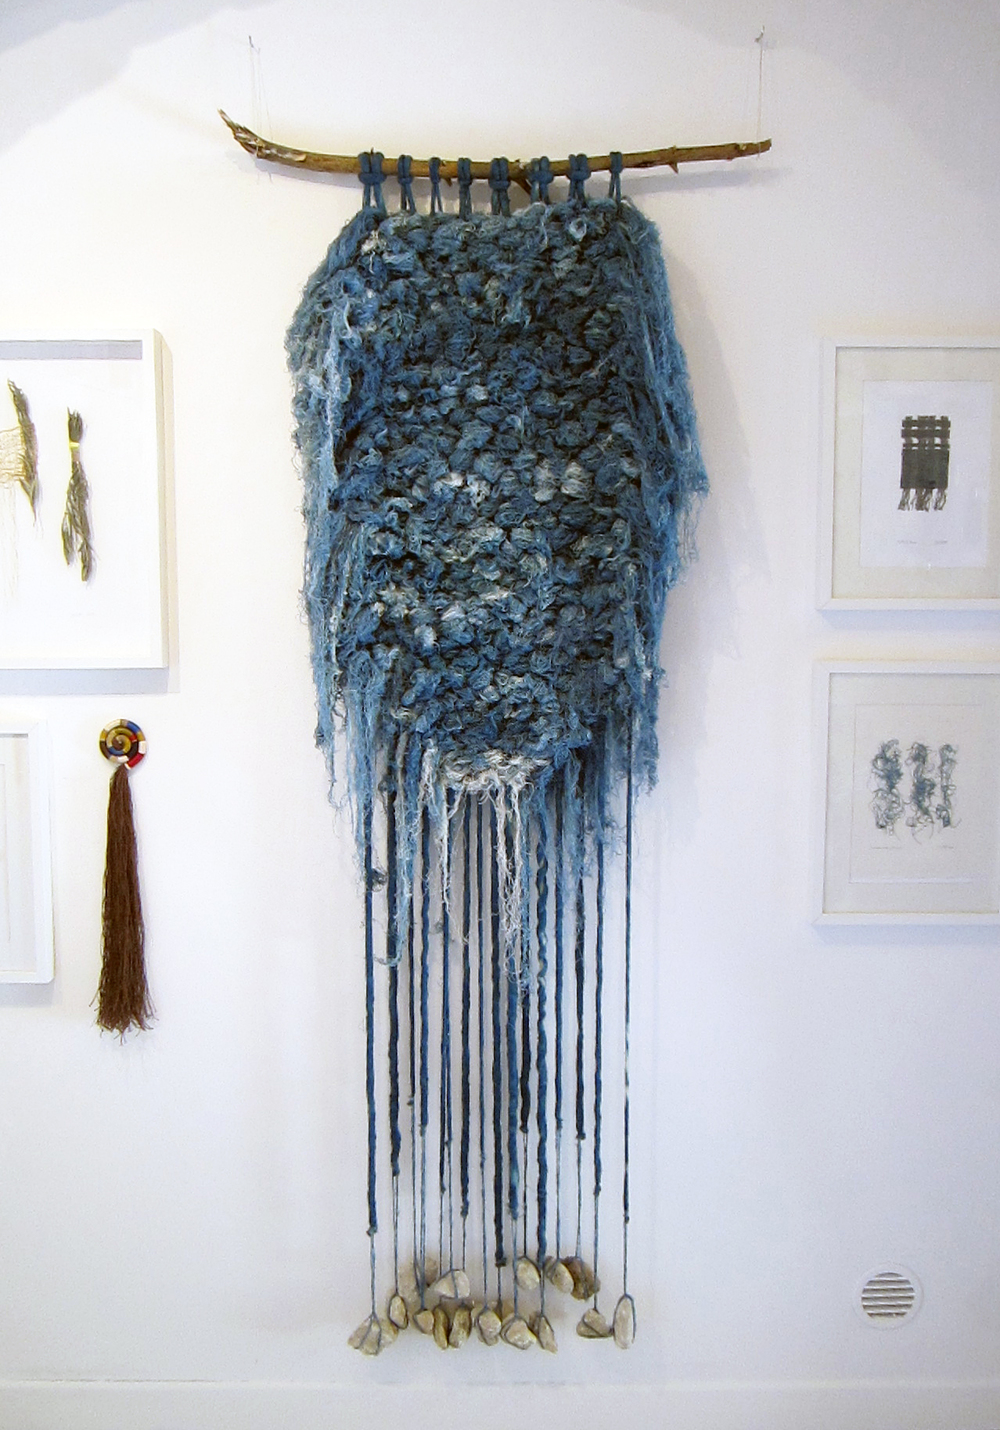 Woad Thread Weaving, 2013